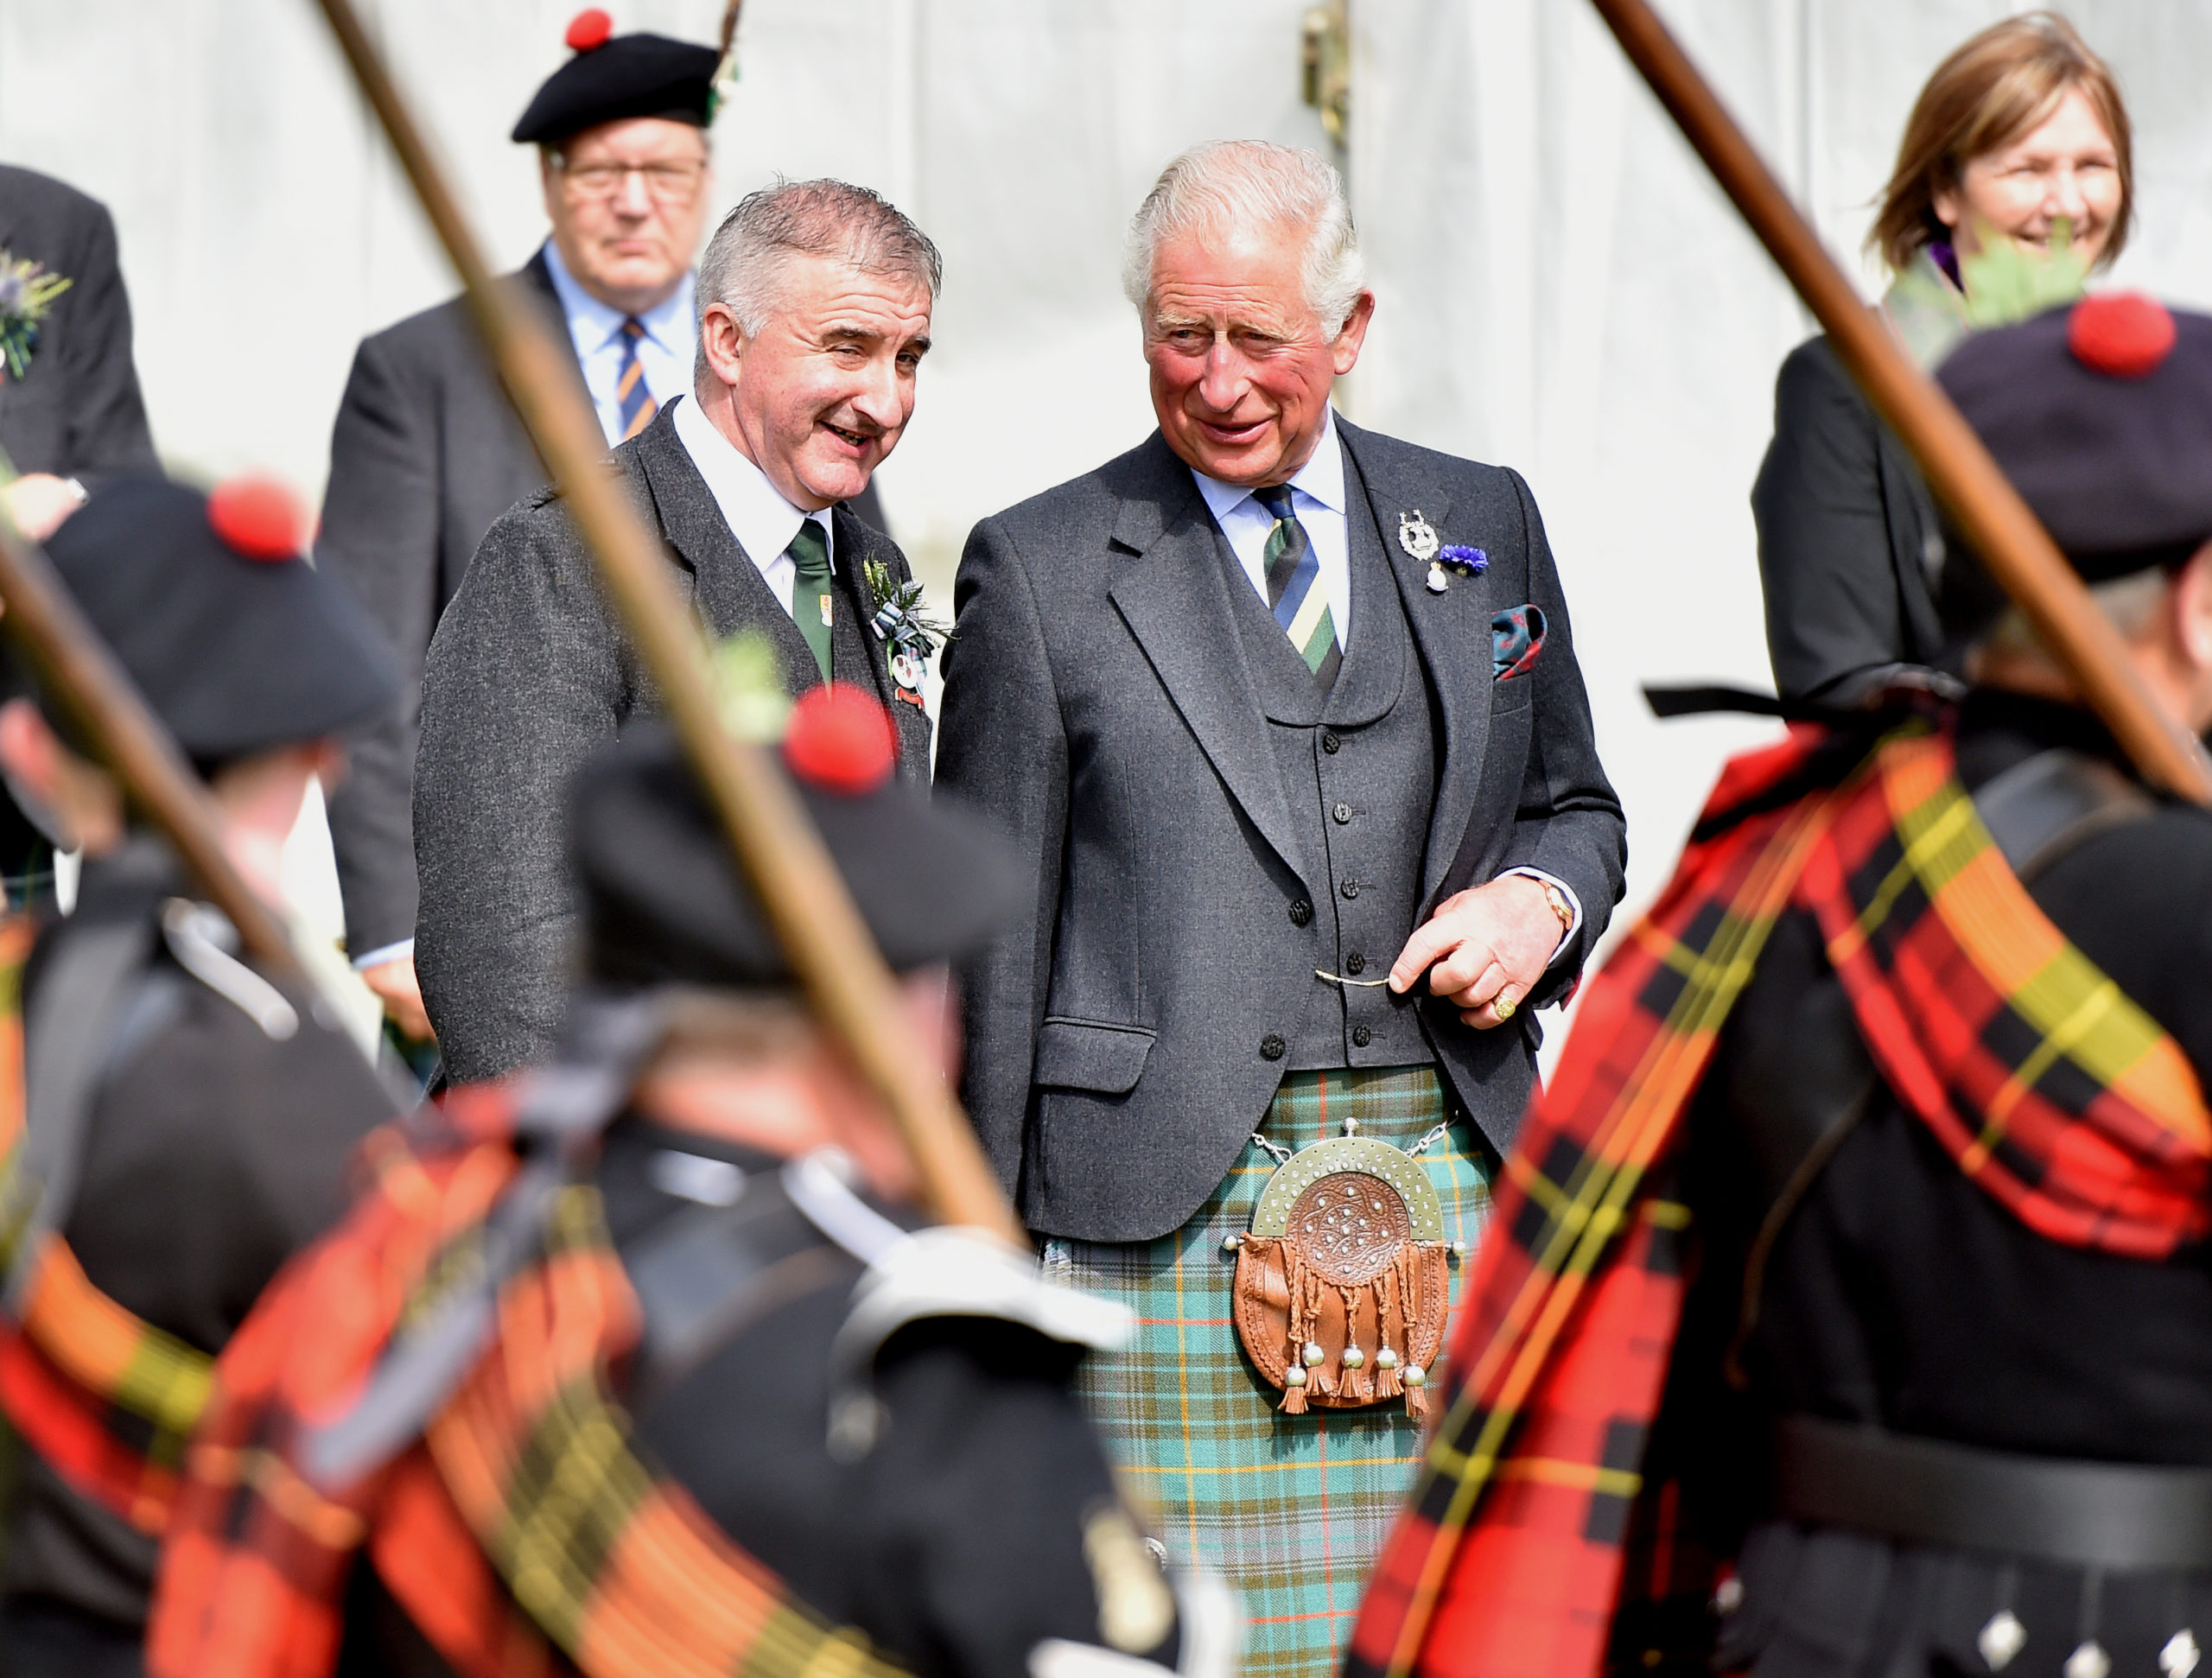 The Duke of Rothesay at Ballater Highland Games, Monaltrie Park. Picture by Scott Baxter 08/08/2019